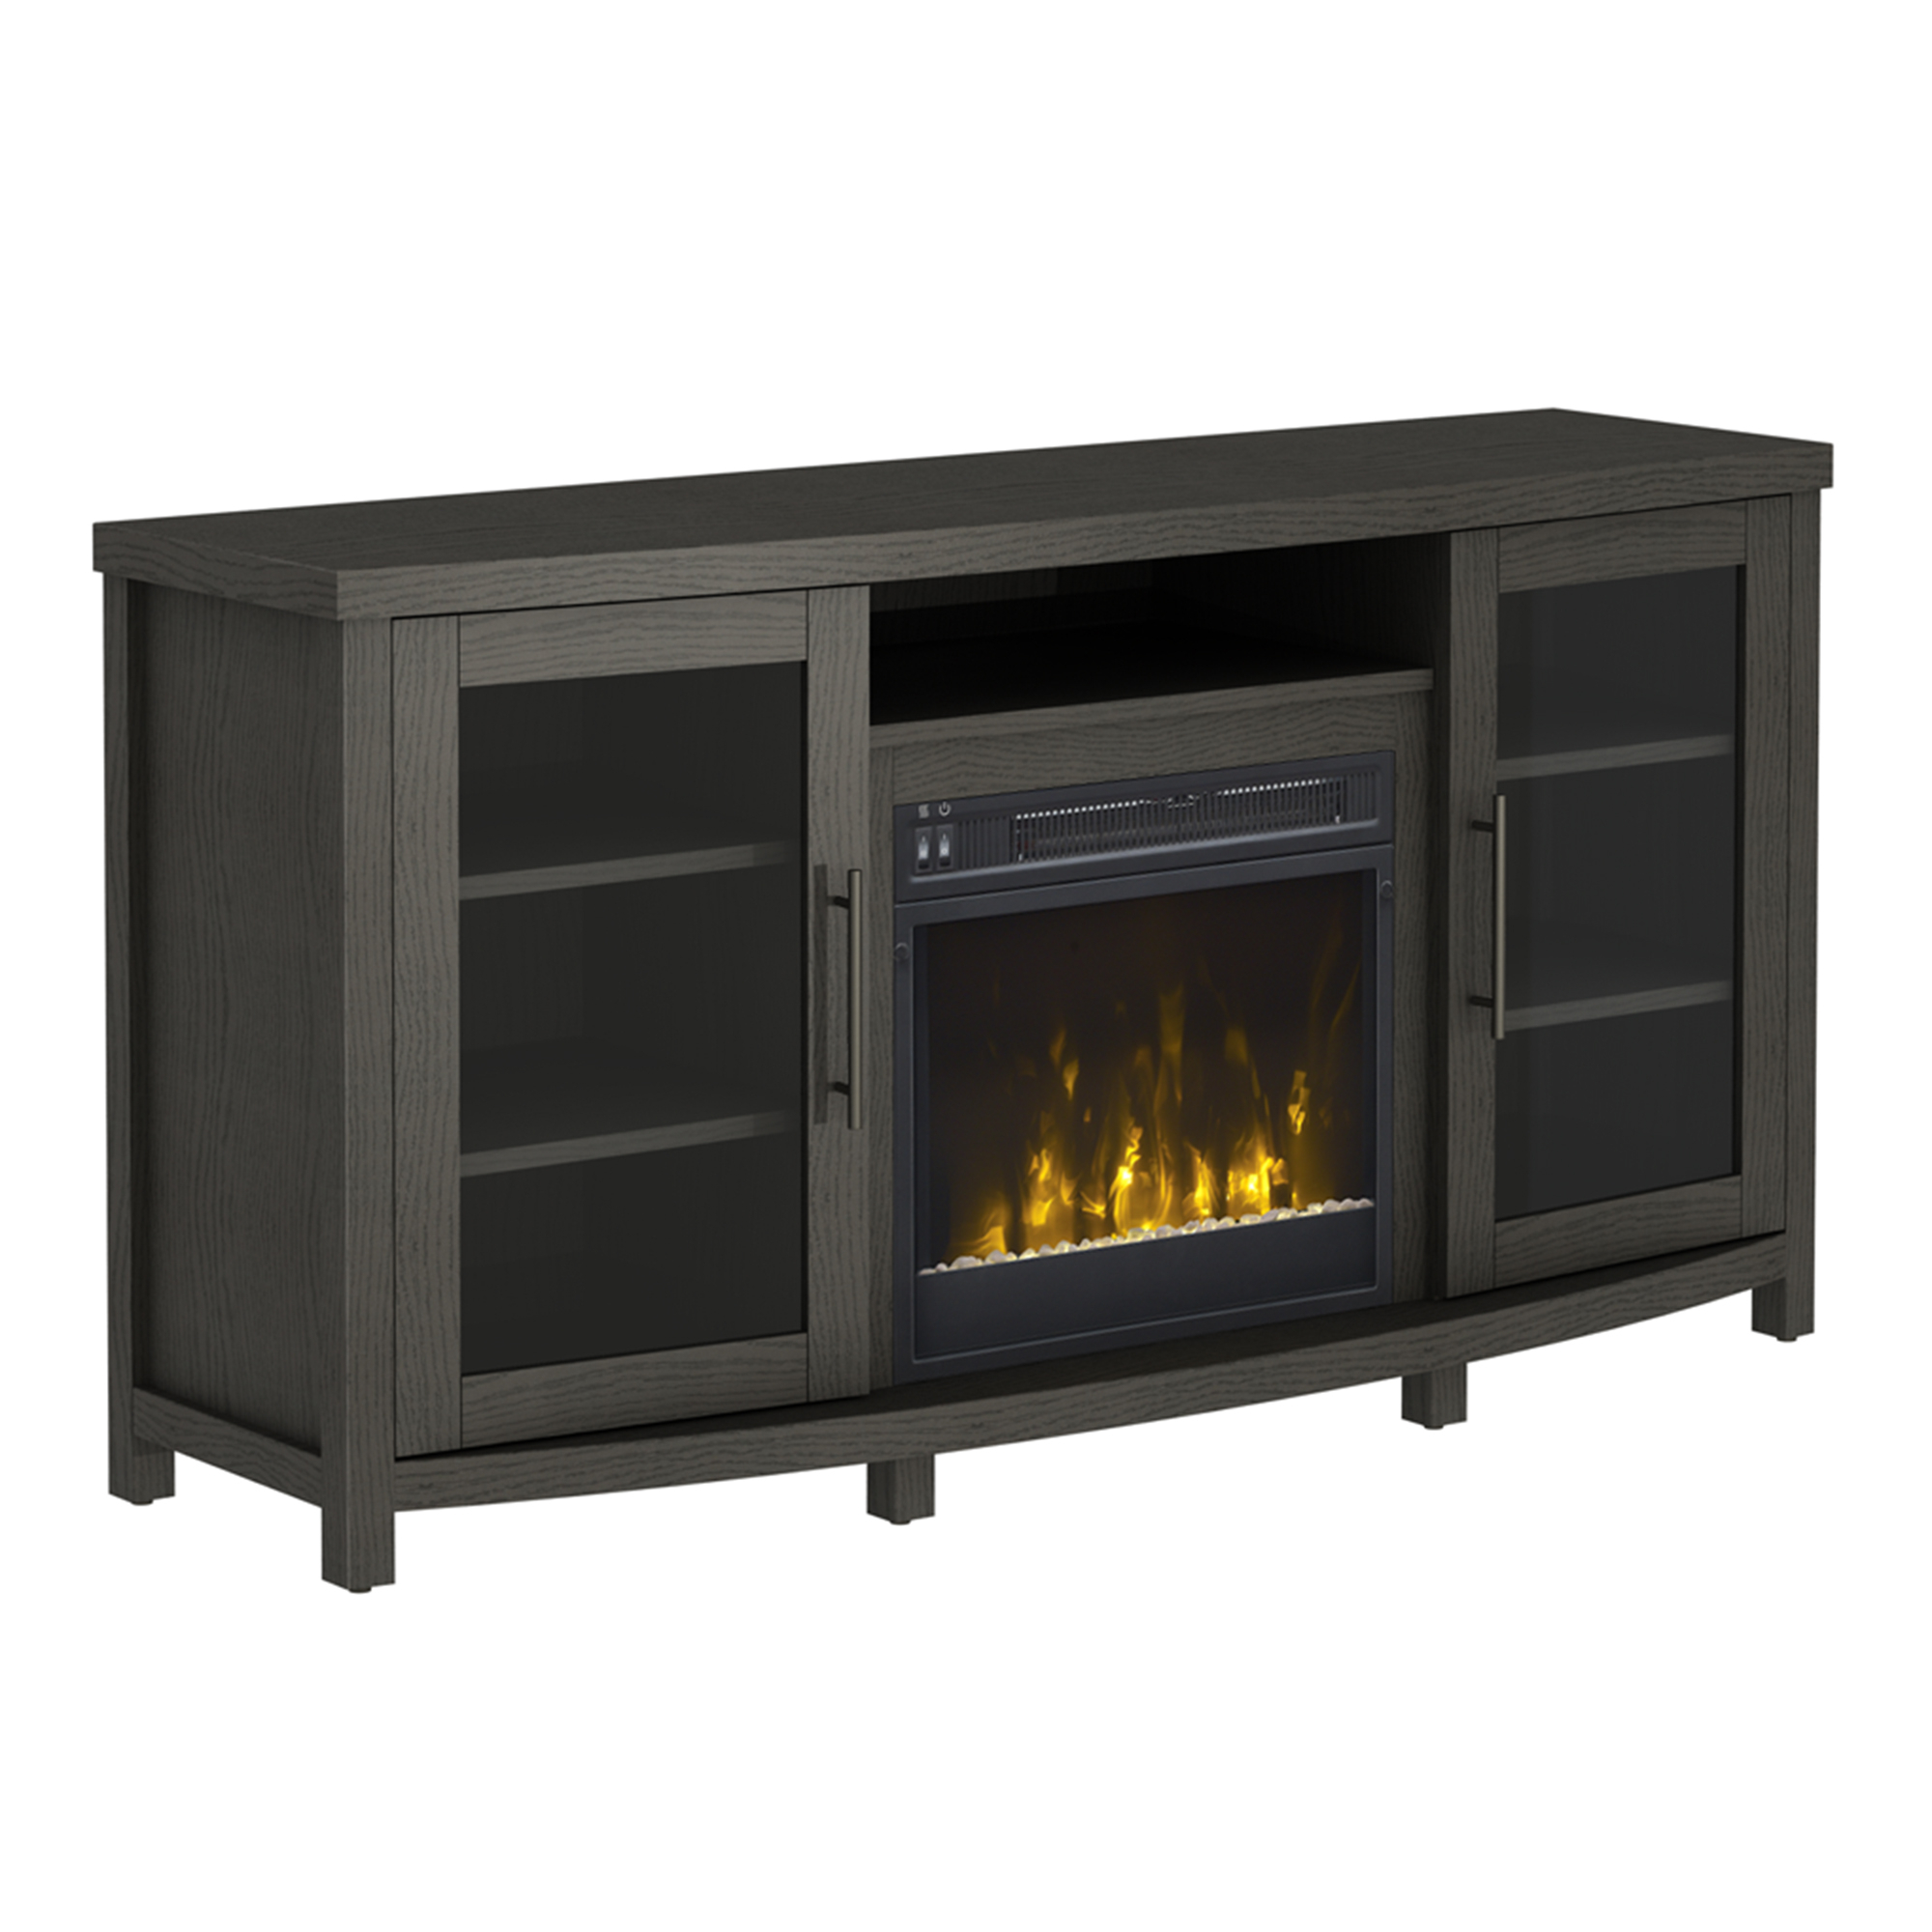 """Rossville Tv Stand For Tvs Up To 60 With Electric Fireplace For Adayah Tv Stands For Tvs Up To 60"""" (View 15 of 20)"""